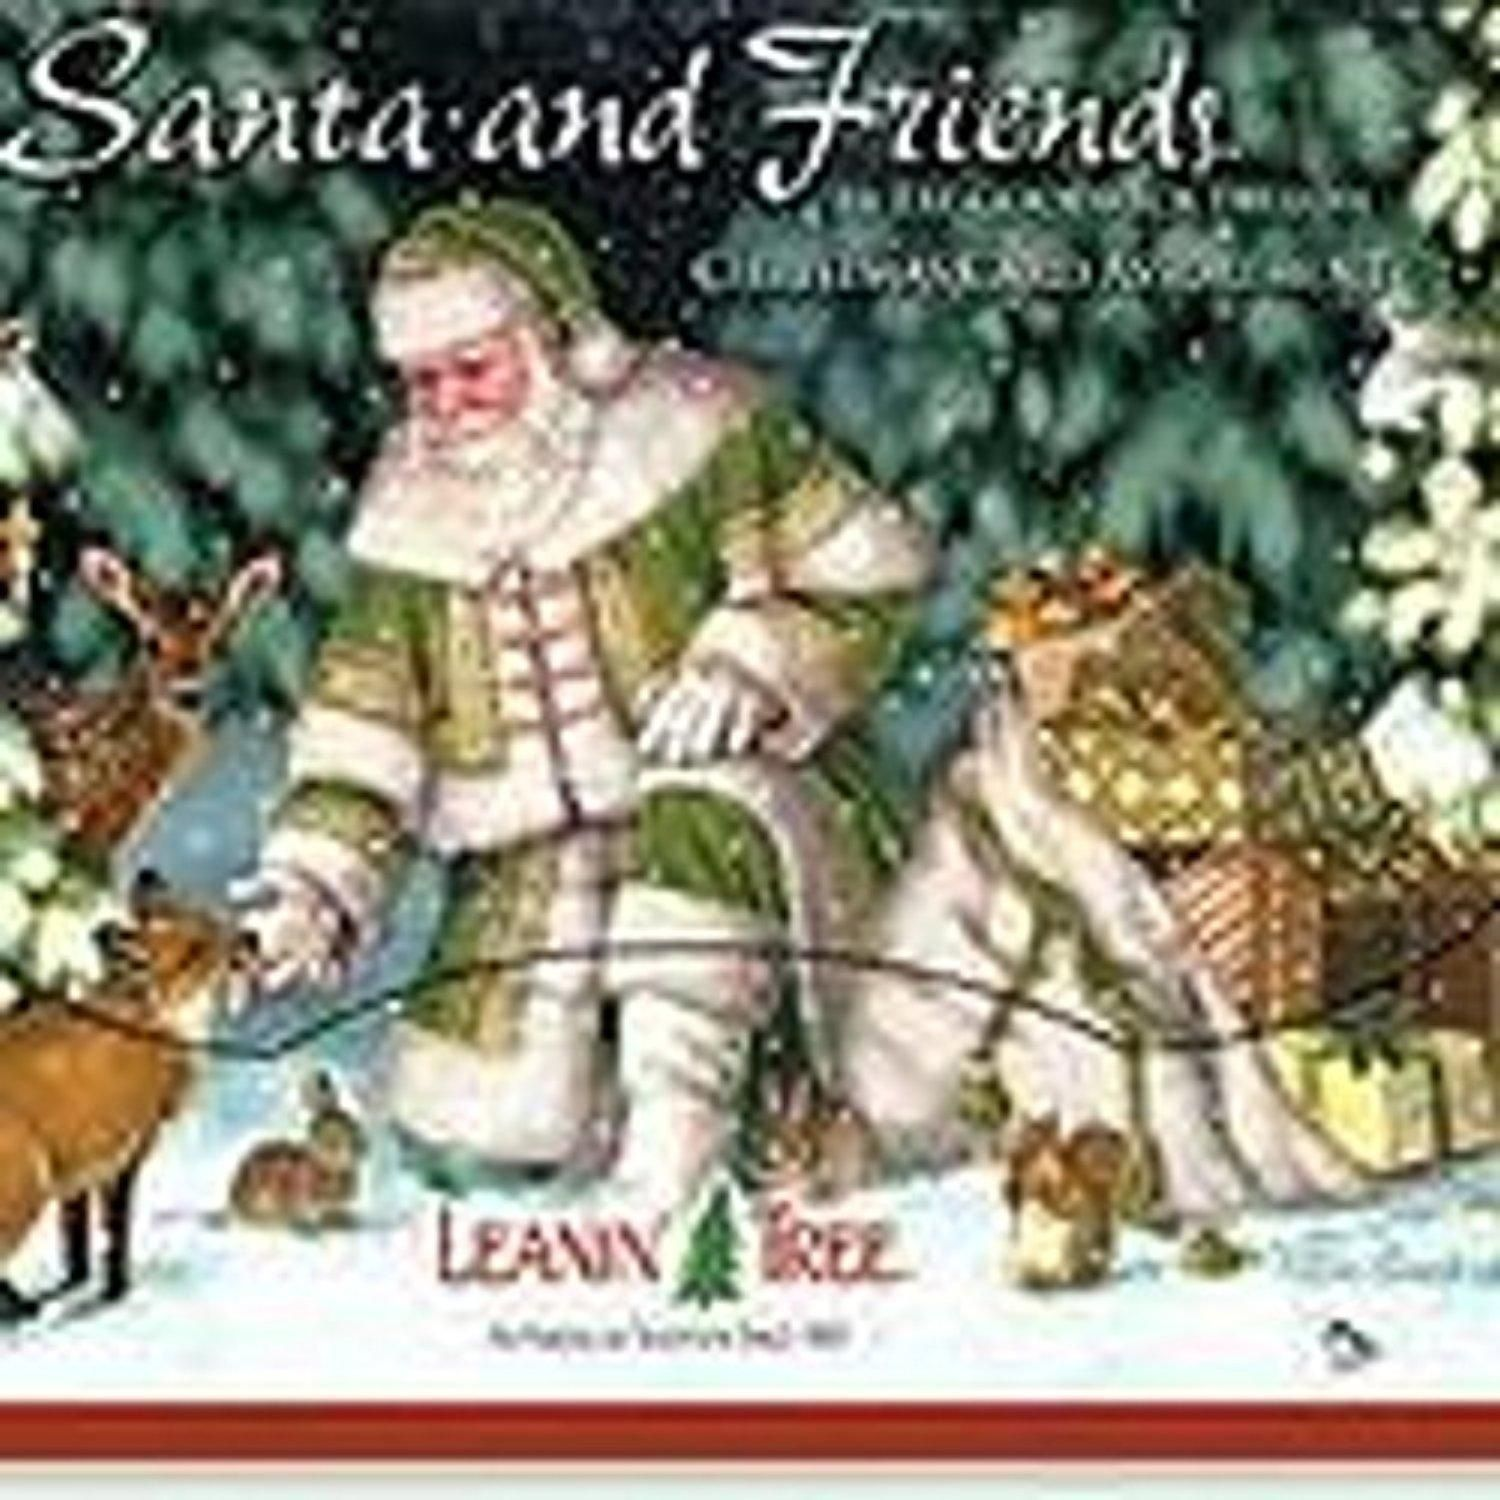 Leanin\' Tree Santa & Friends Christmas Boxed Cards - Brought to you ...